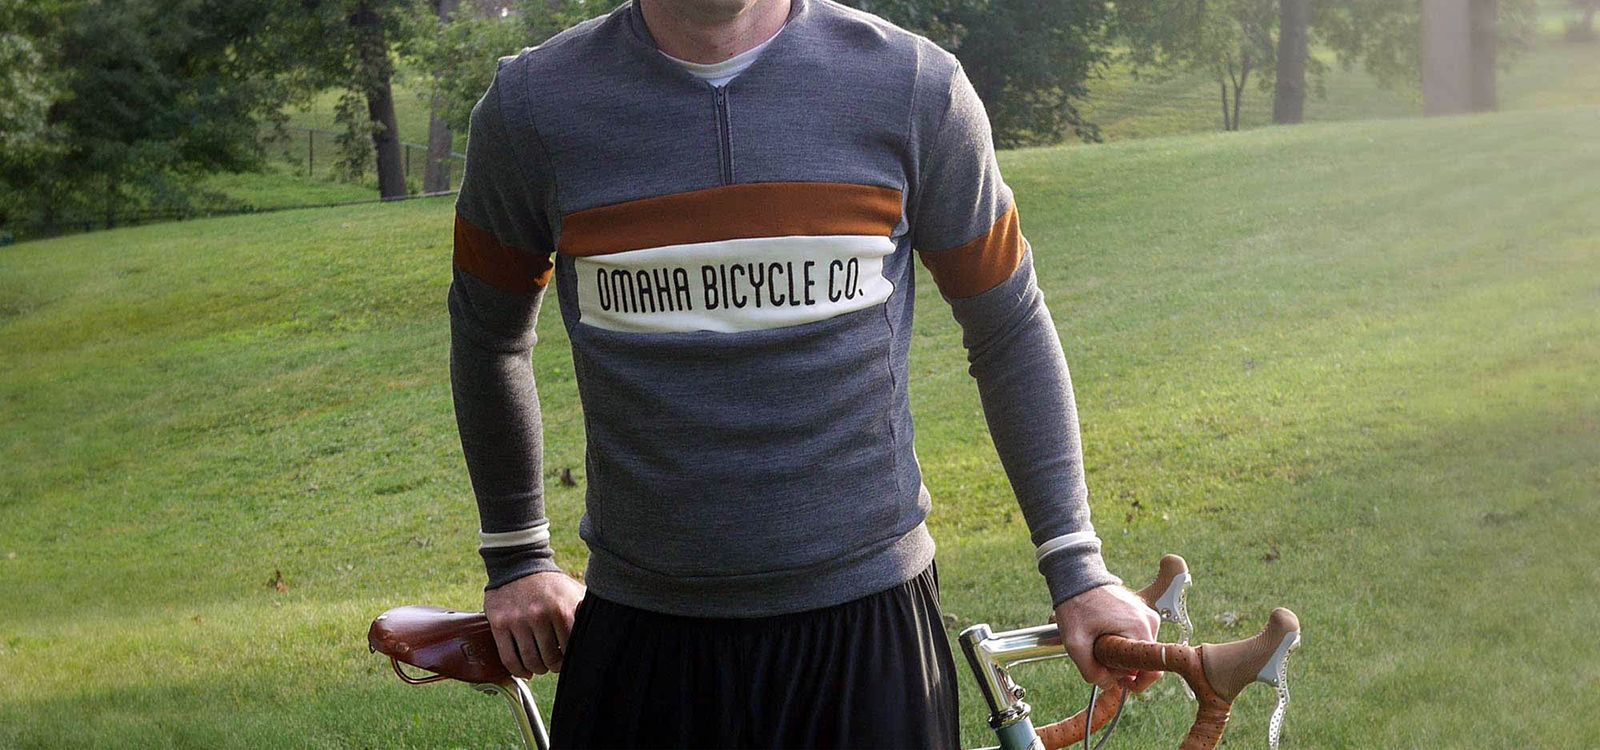 Vêtements cyclisme vintage - Classical Bicycles